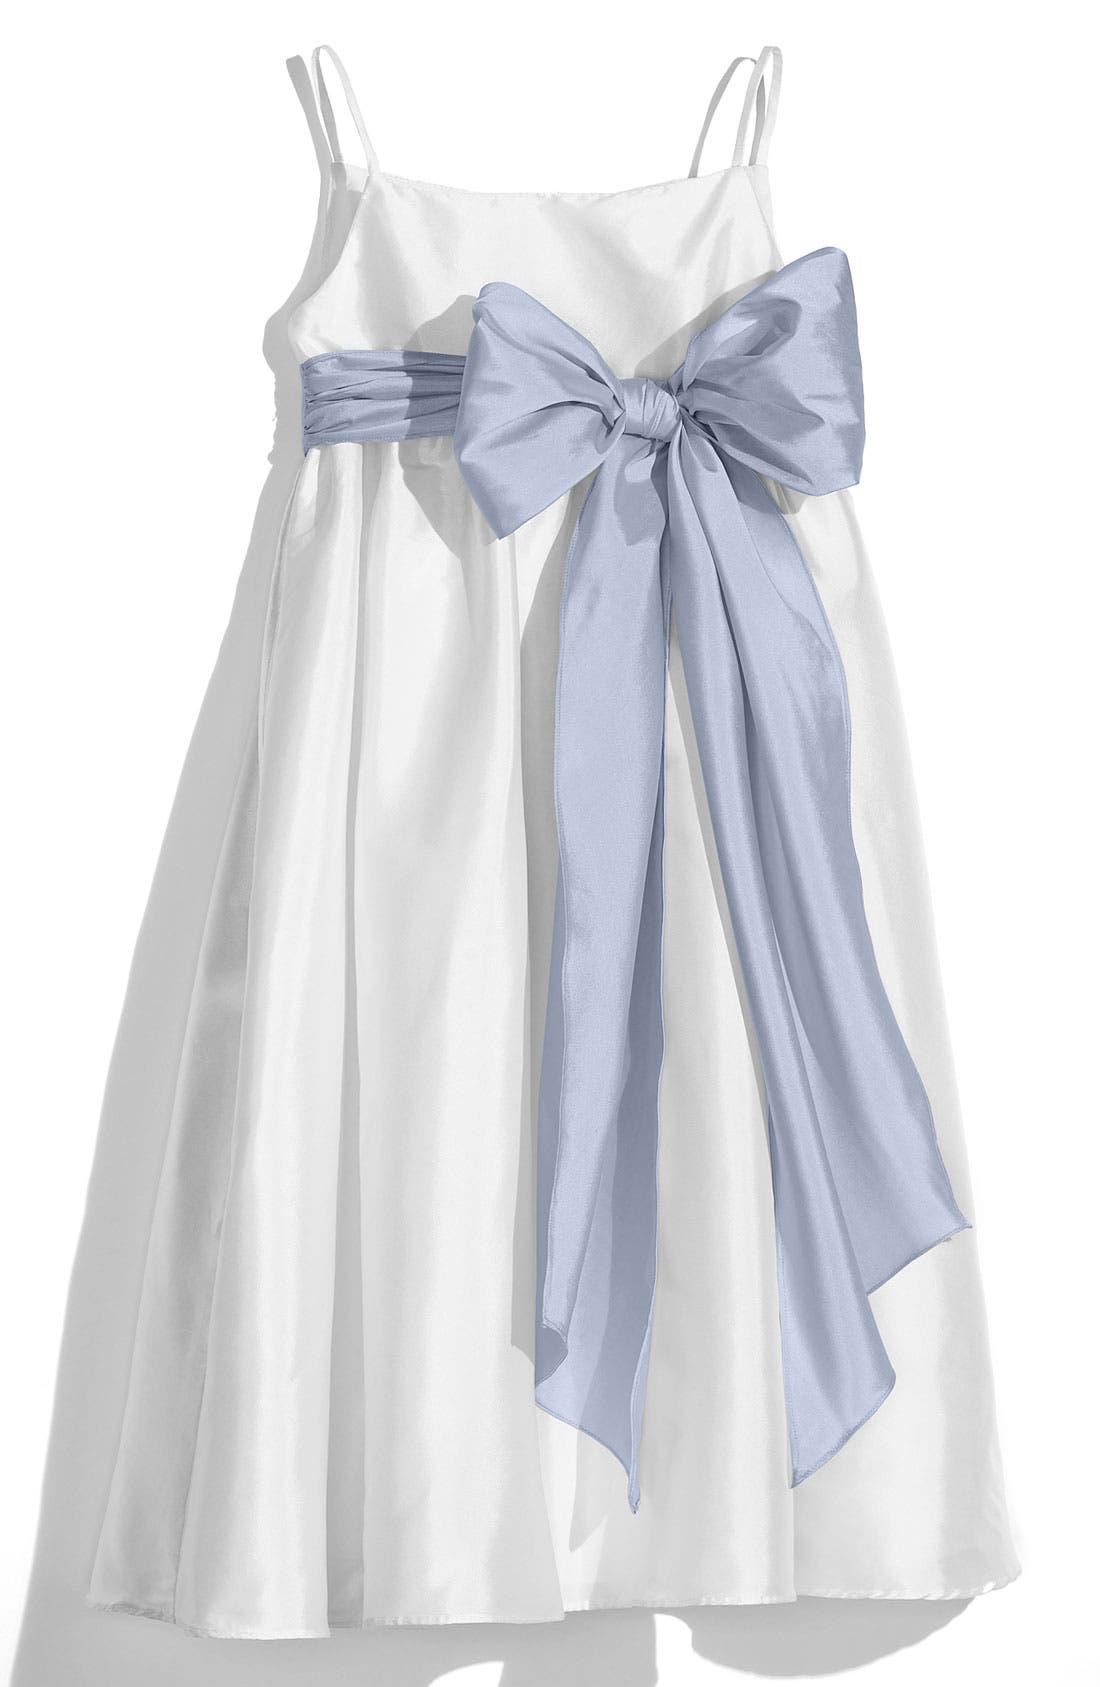 White Sleeveless Empire Waist Taffeta Dress,                             Main thumbnail 1, color,                             White/ Pewter